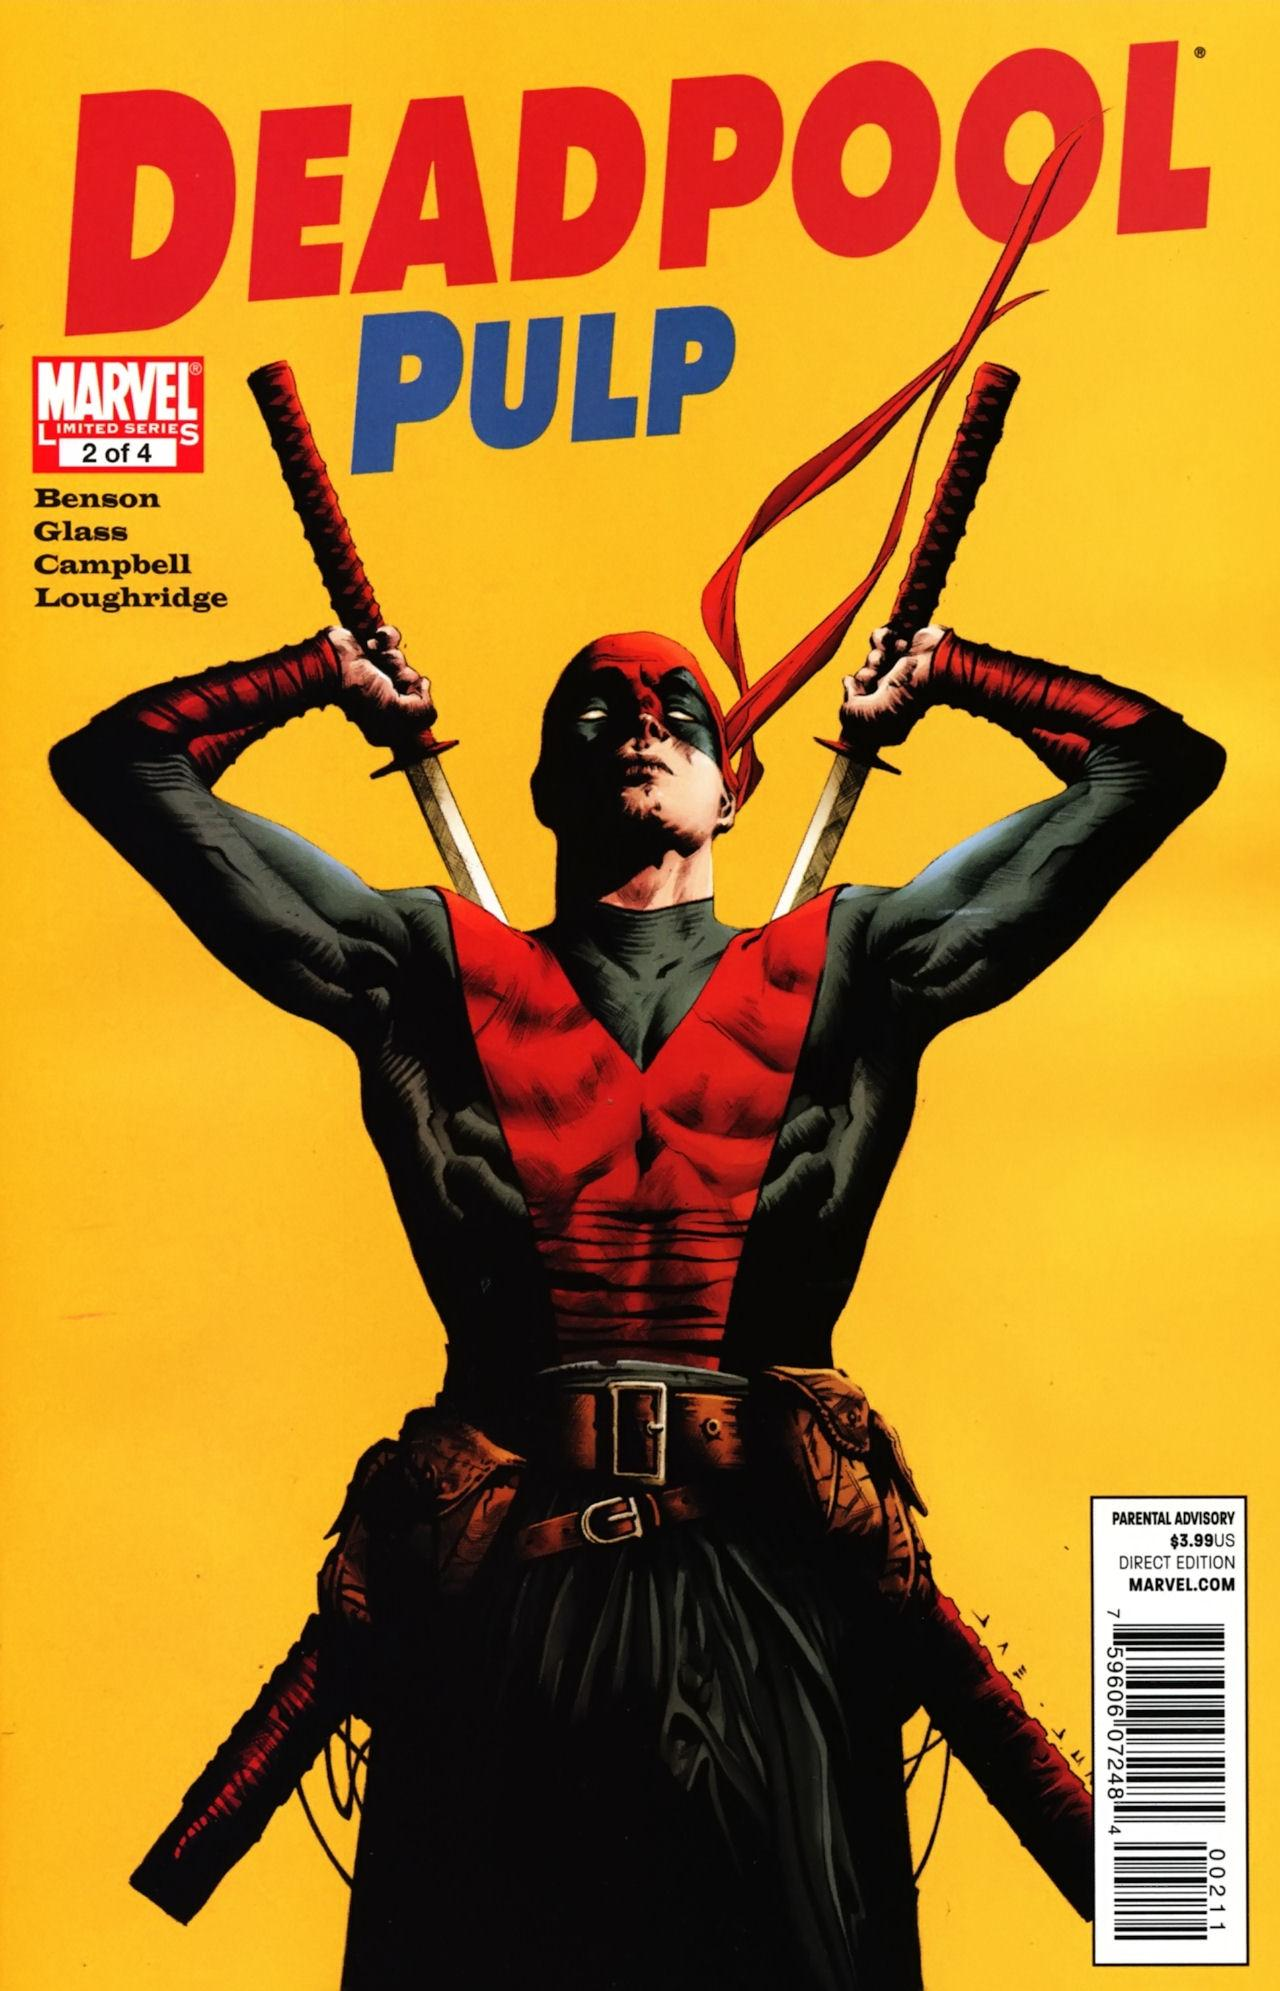 Deadpool Pulp Vol 1 2